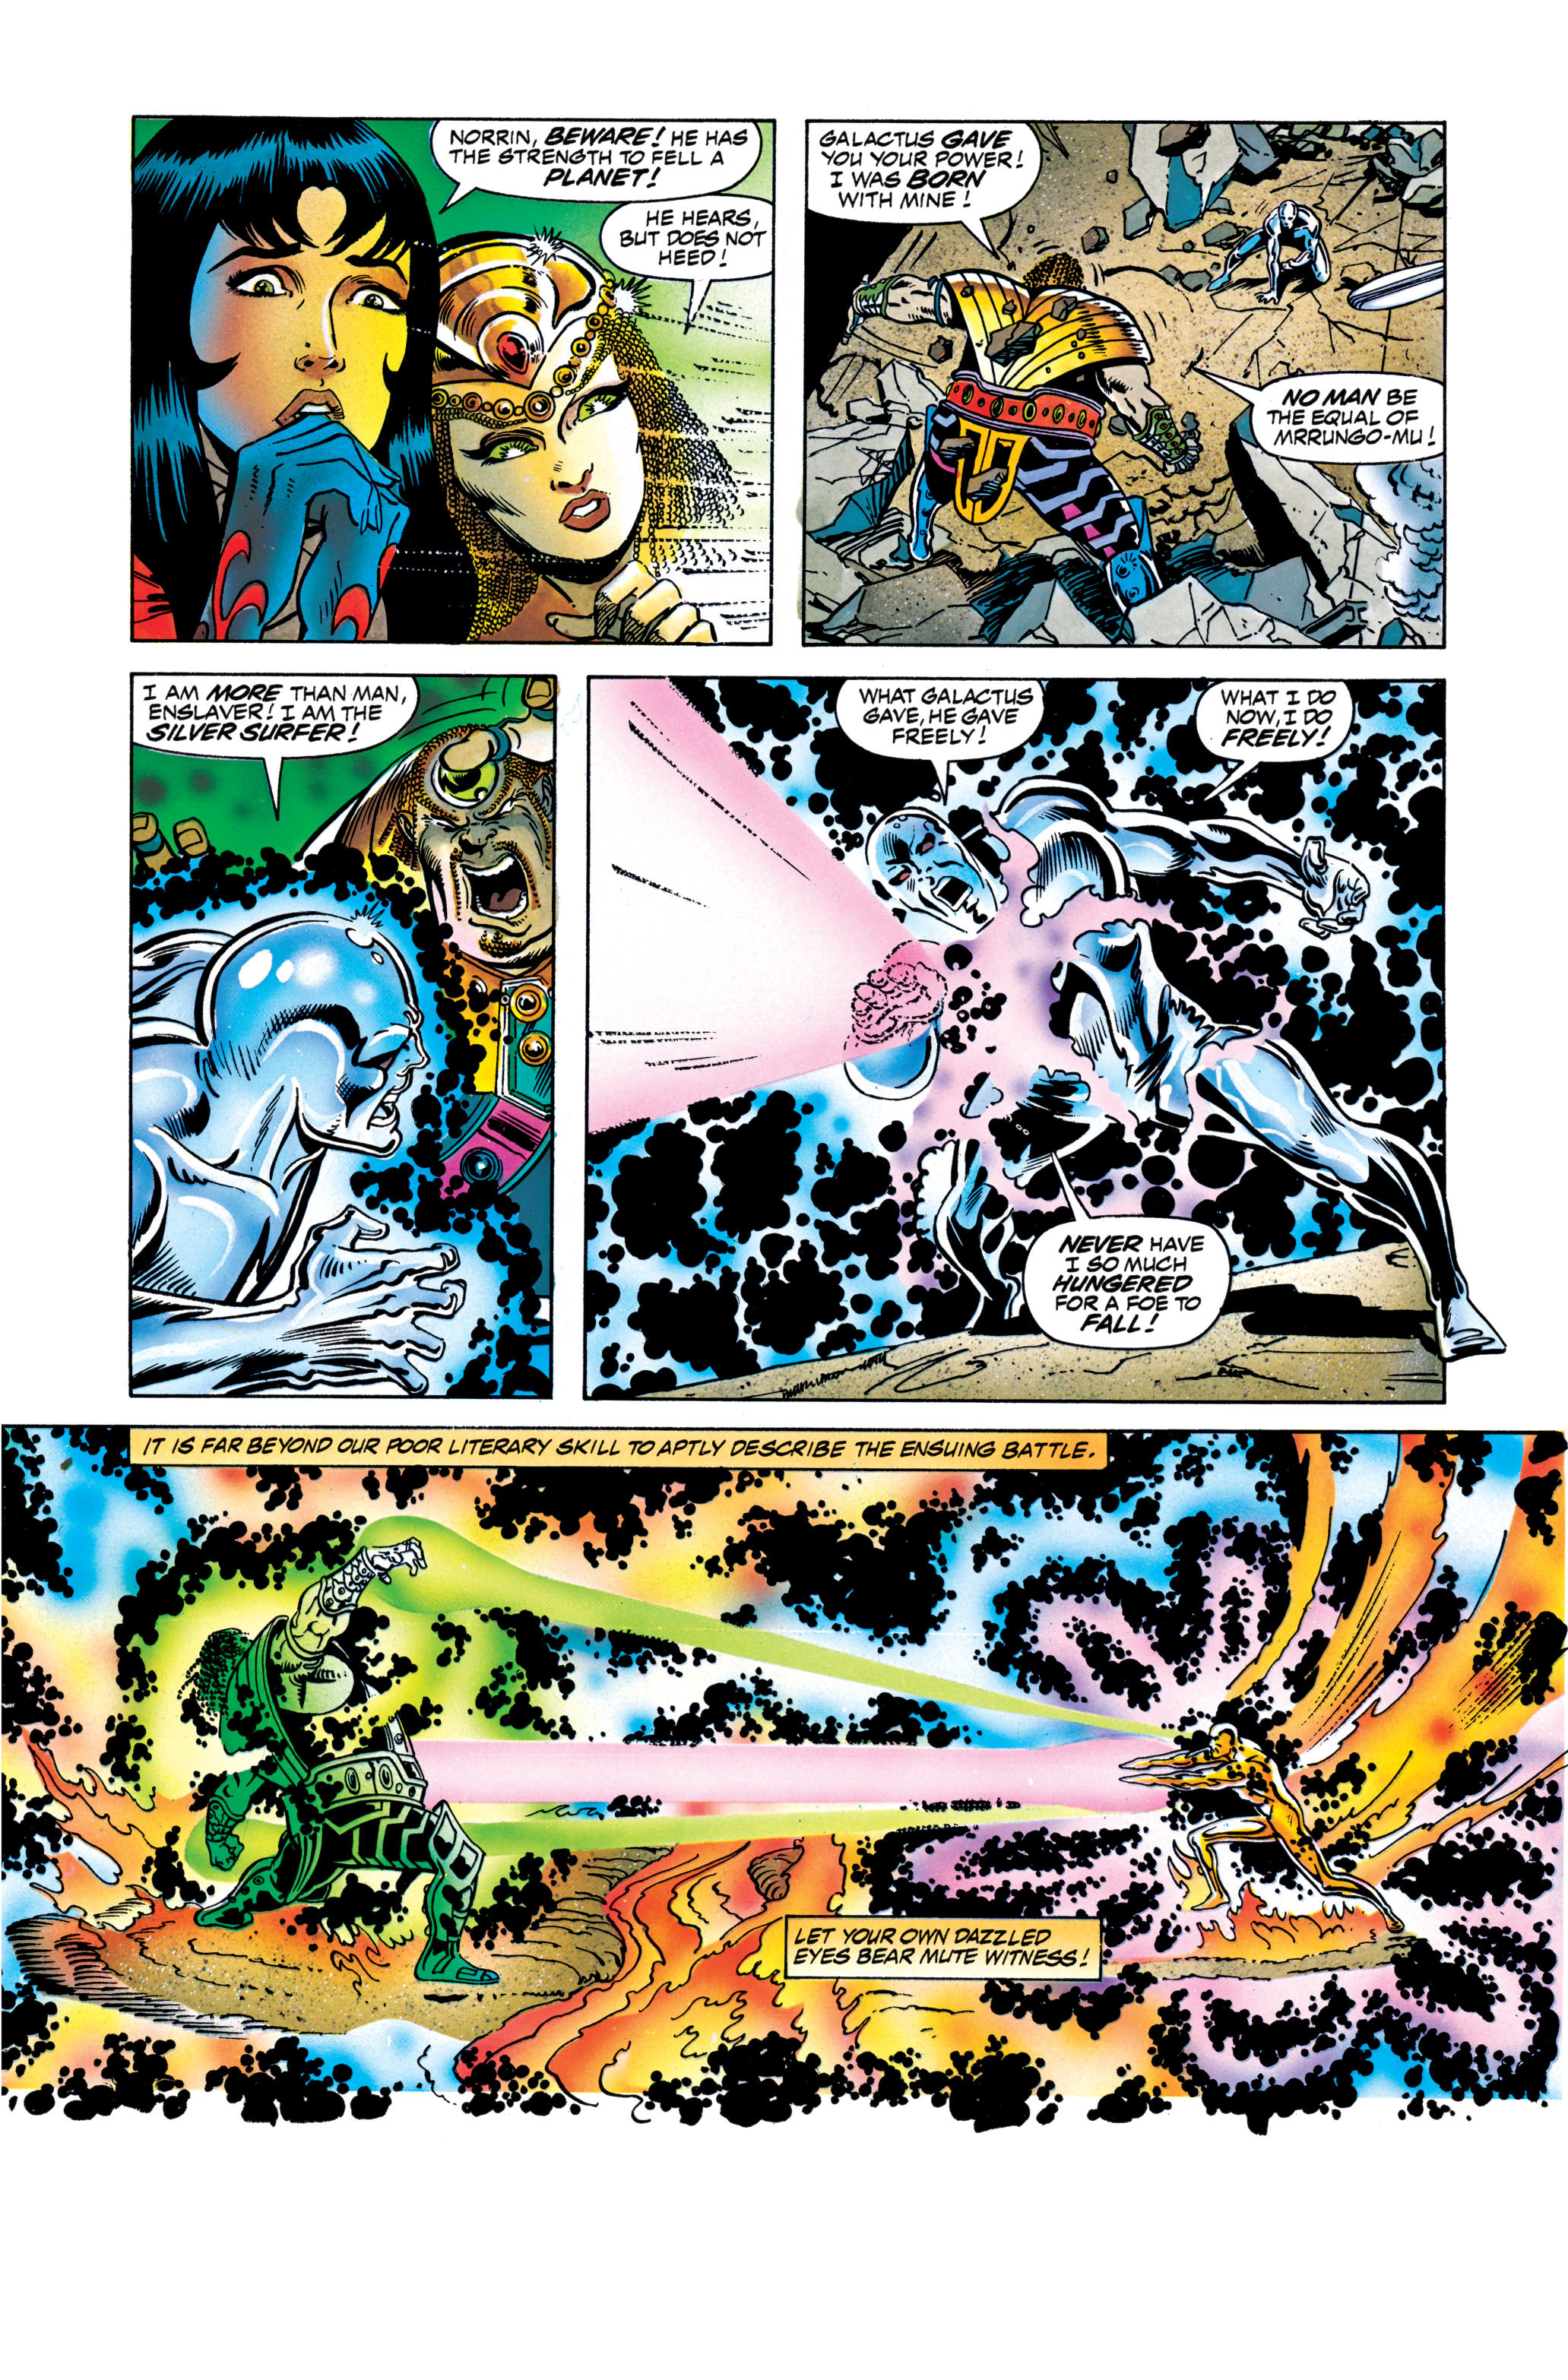 Read online Silver Surfer: Parable comic -  Issue # TPB - 125